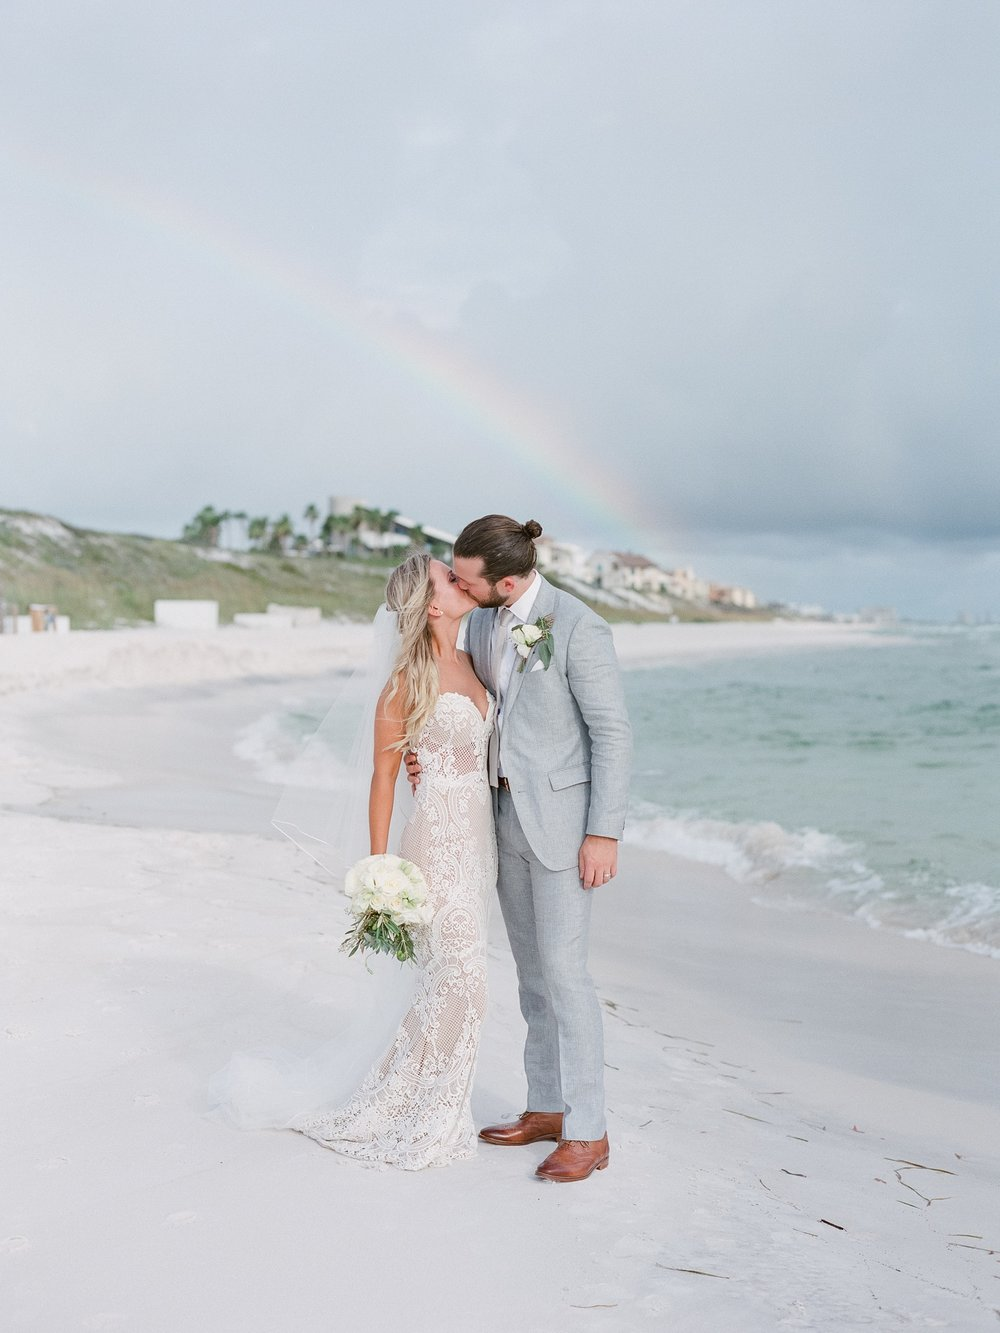 Jessie Barksdale Photography_beautiful wedding photos_berta wedding dress_ alys beach 30a rosemary destin fl